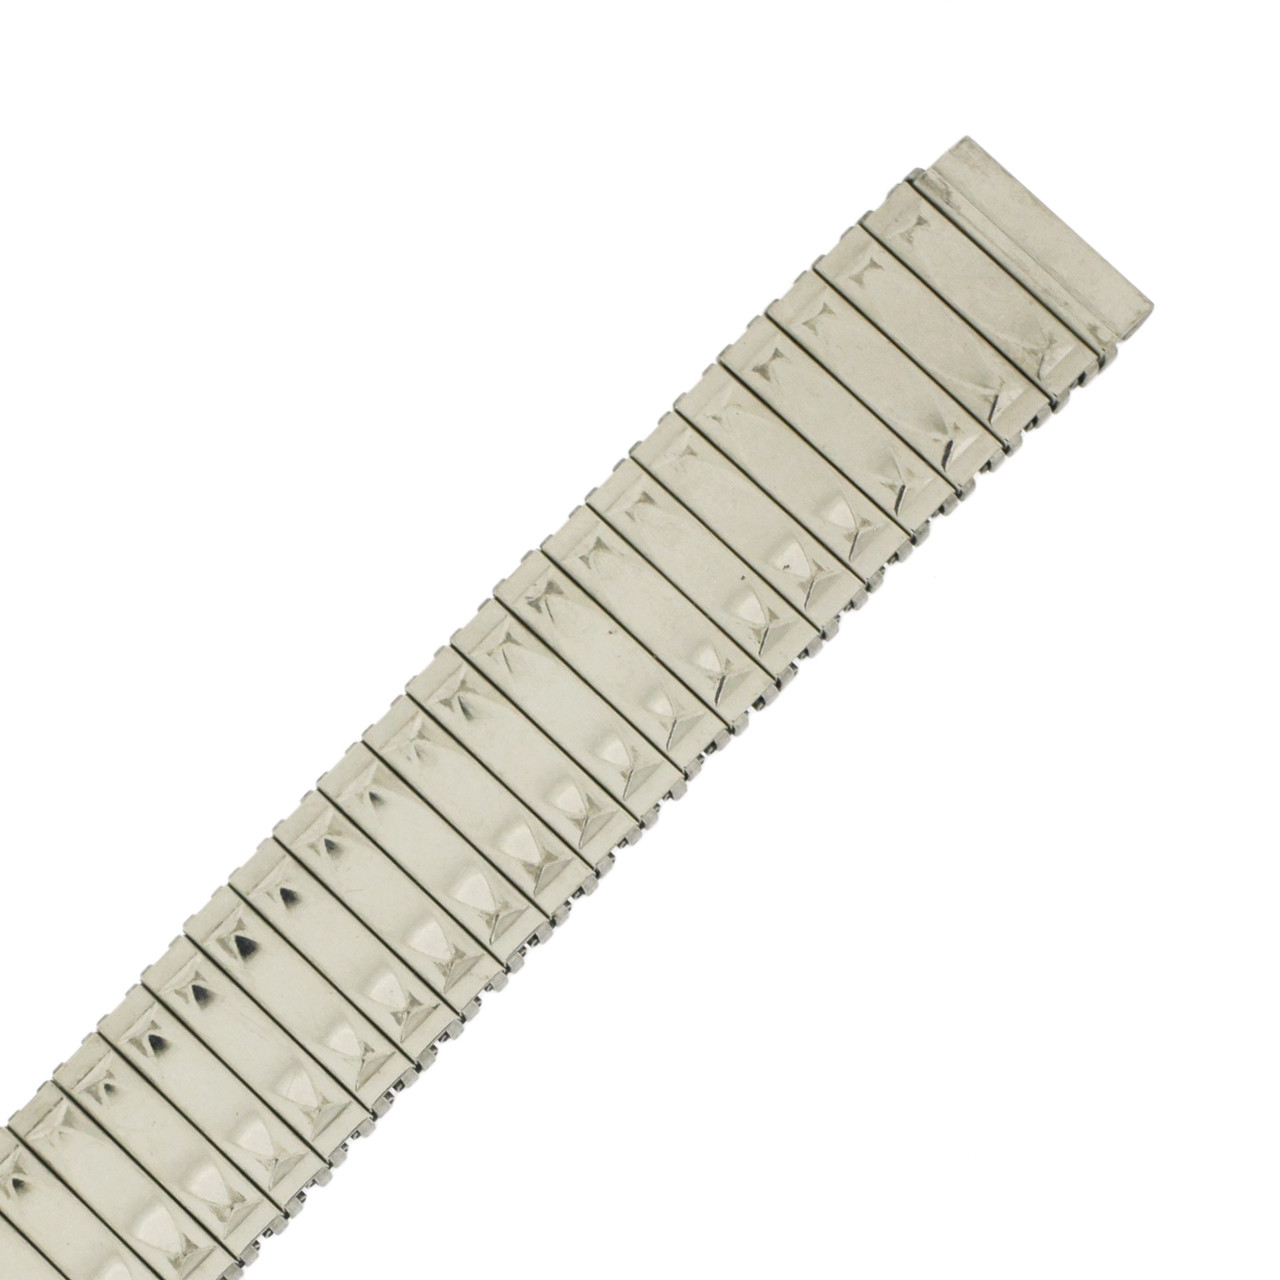 Watch Band Expansion Metal Stretch Silver Color 17mm-20mm - Main